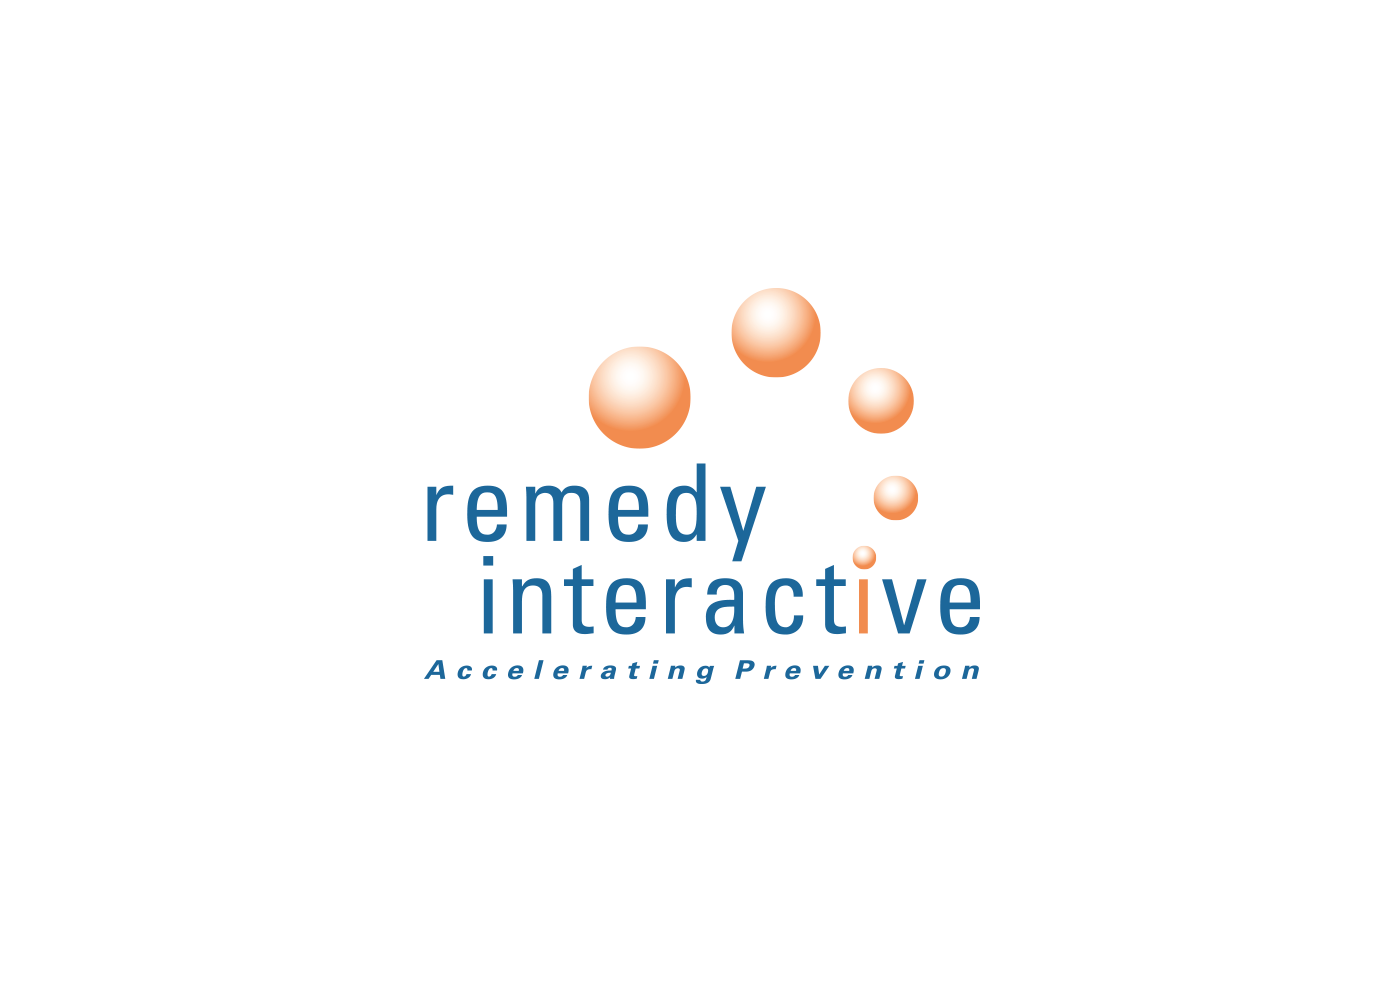 Remedy interactive branding agency project before